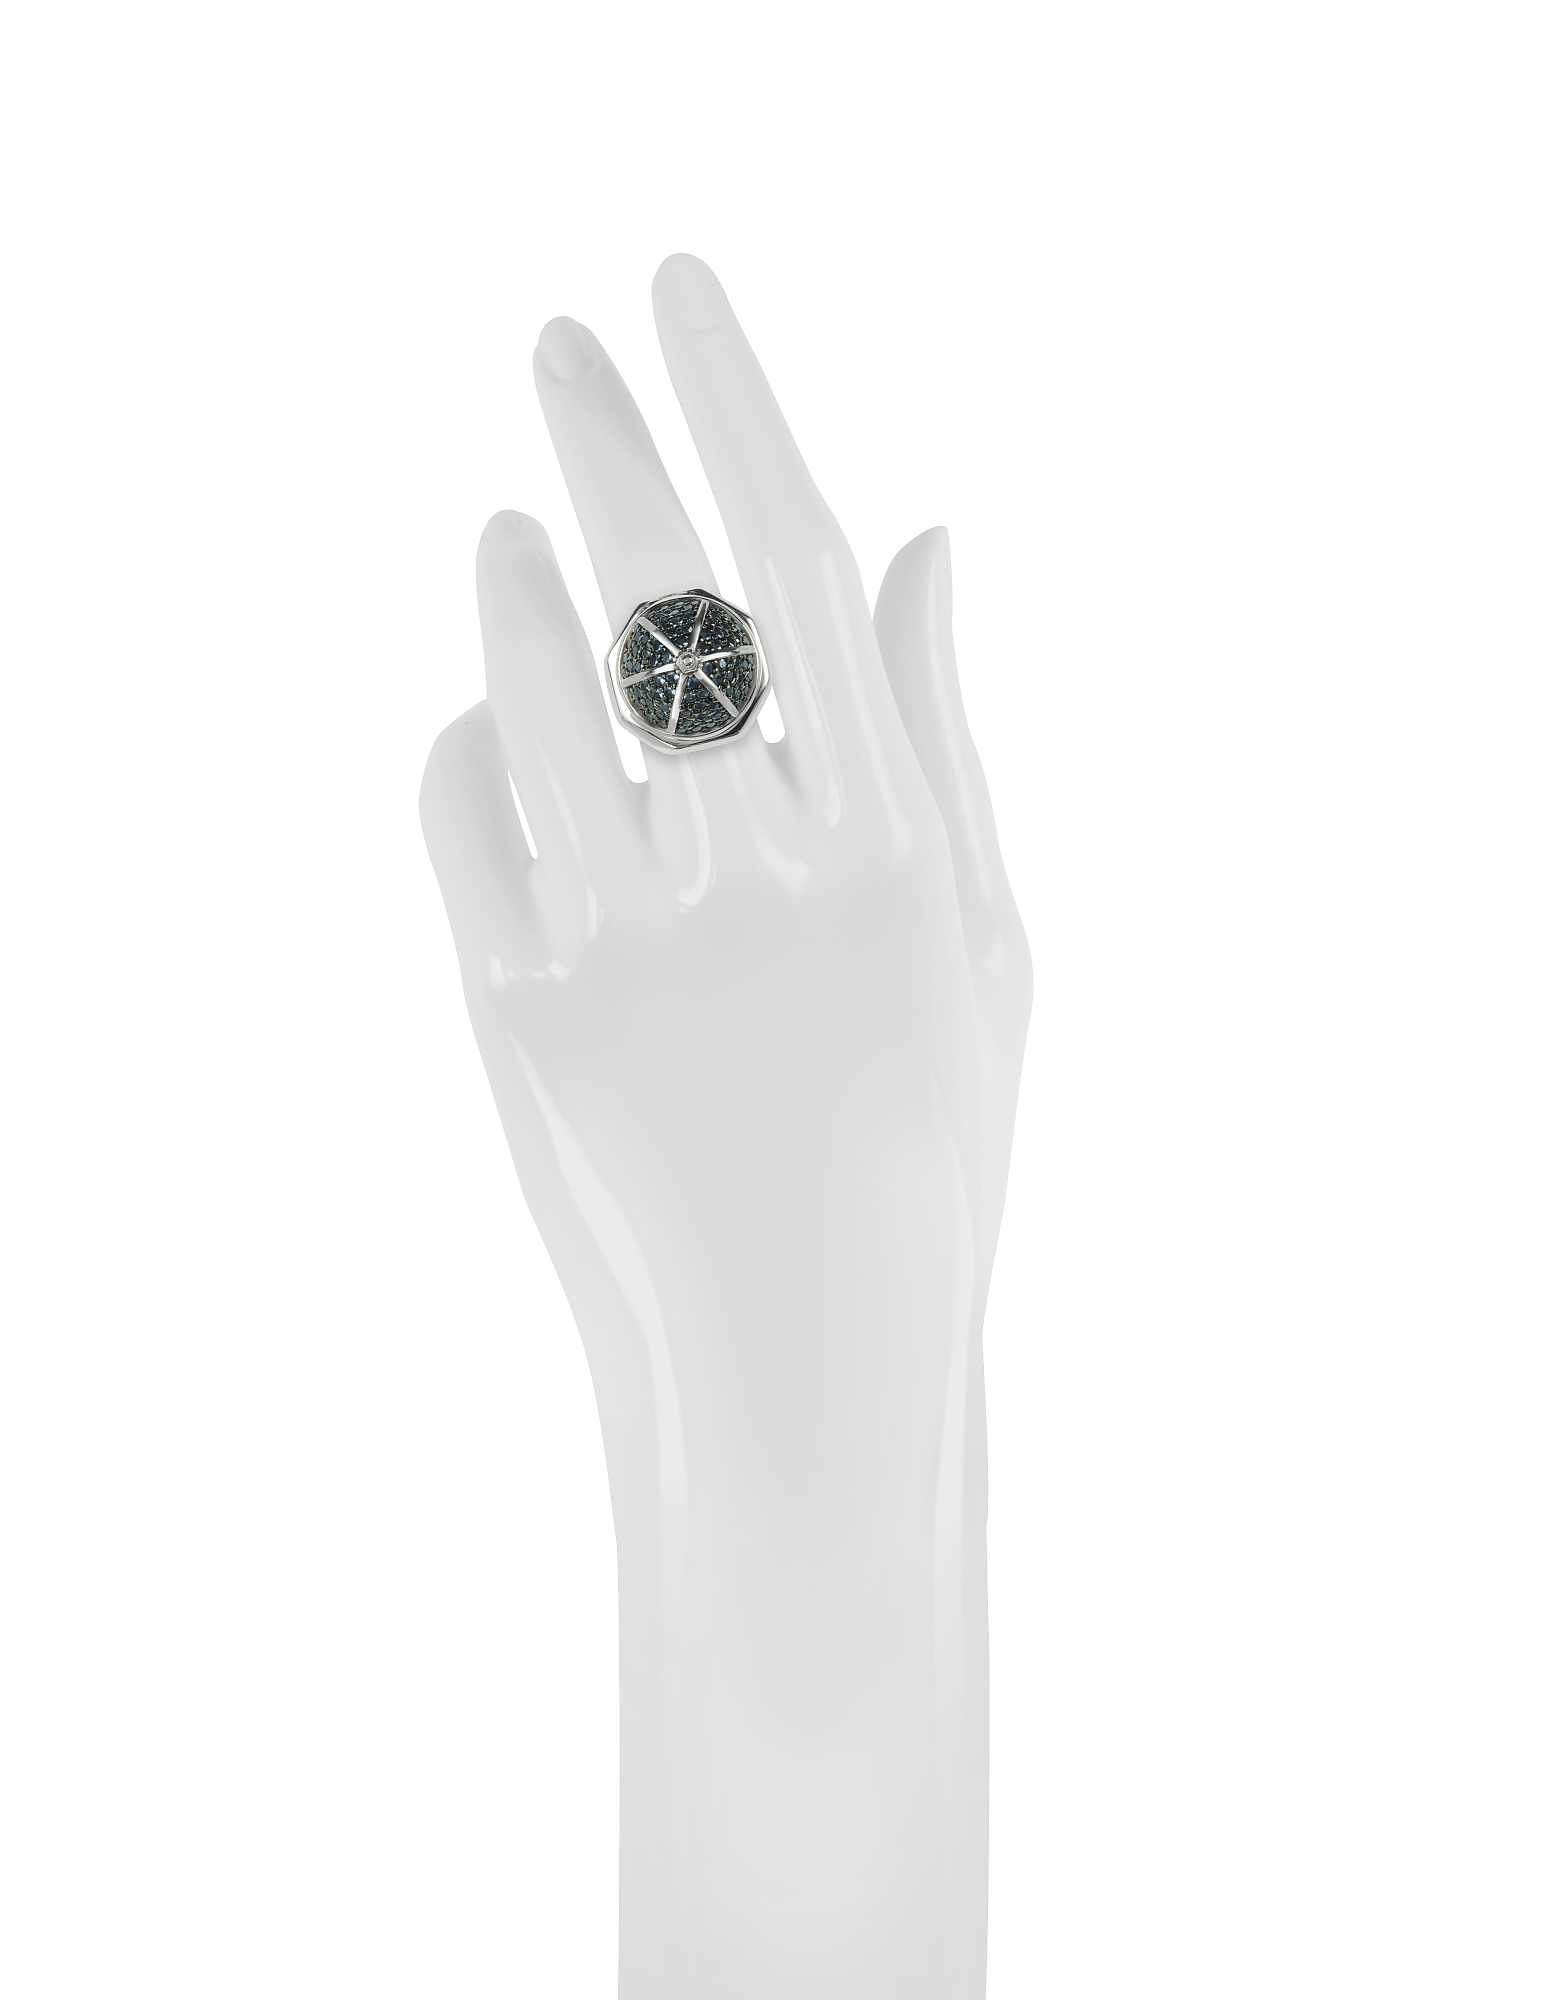 Rhodium Plated Sterling Silver Adjustable Ring w/Black Cubic Zirconia от Forzieri.com INT